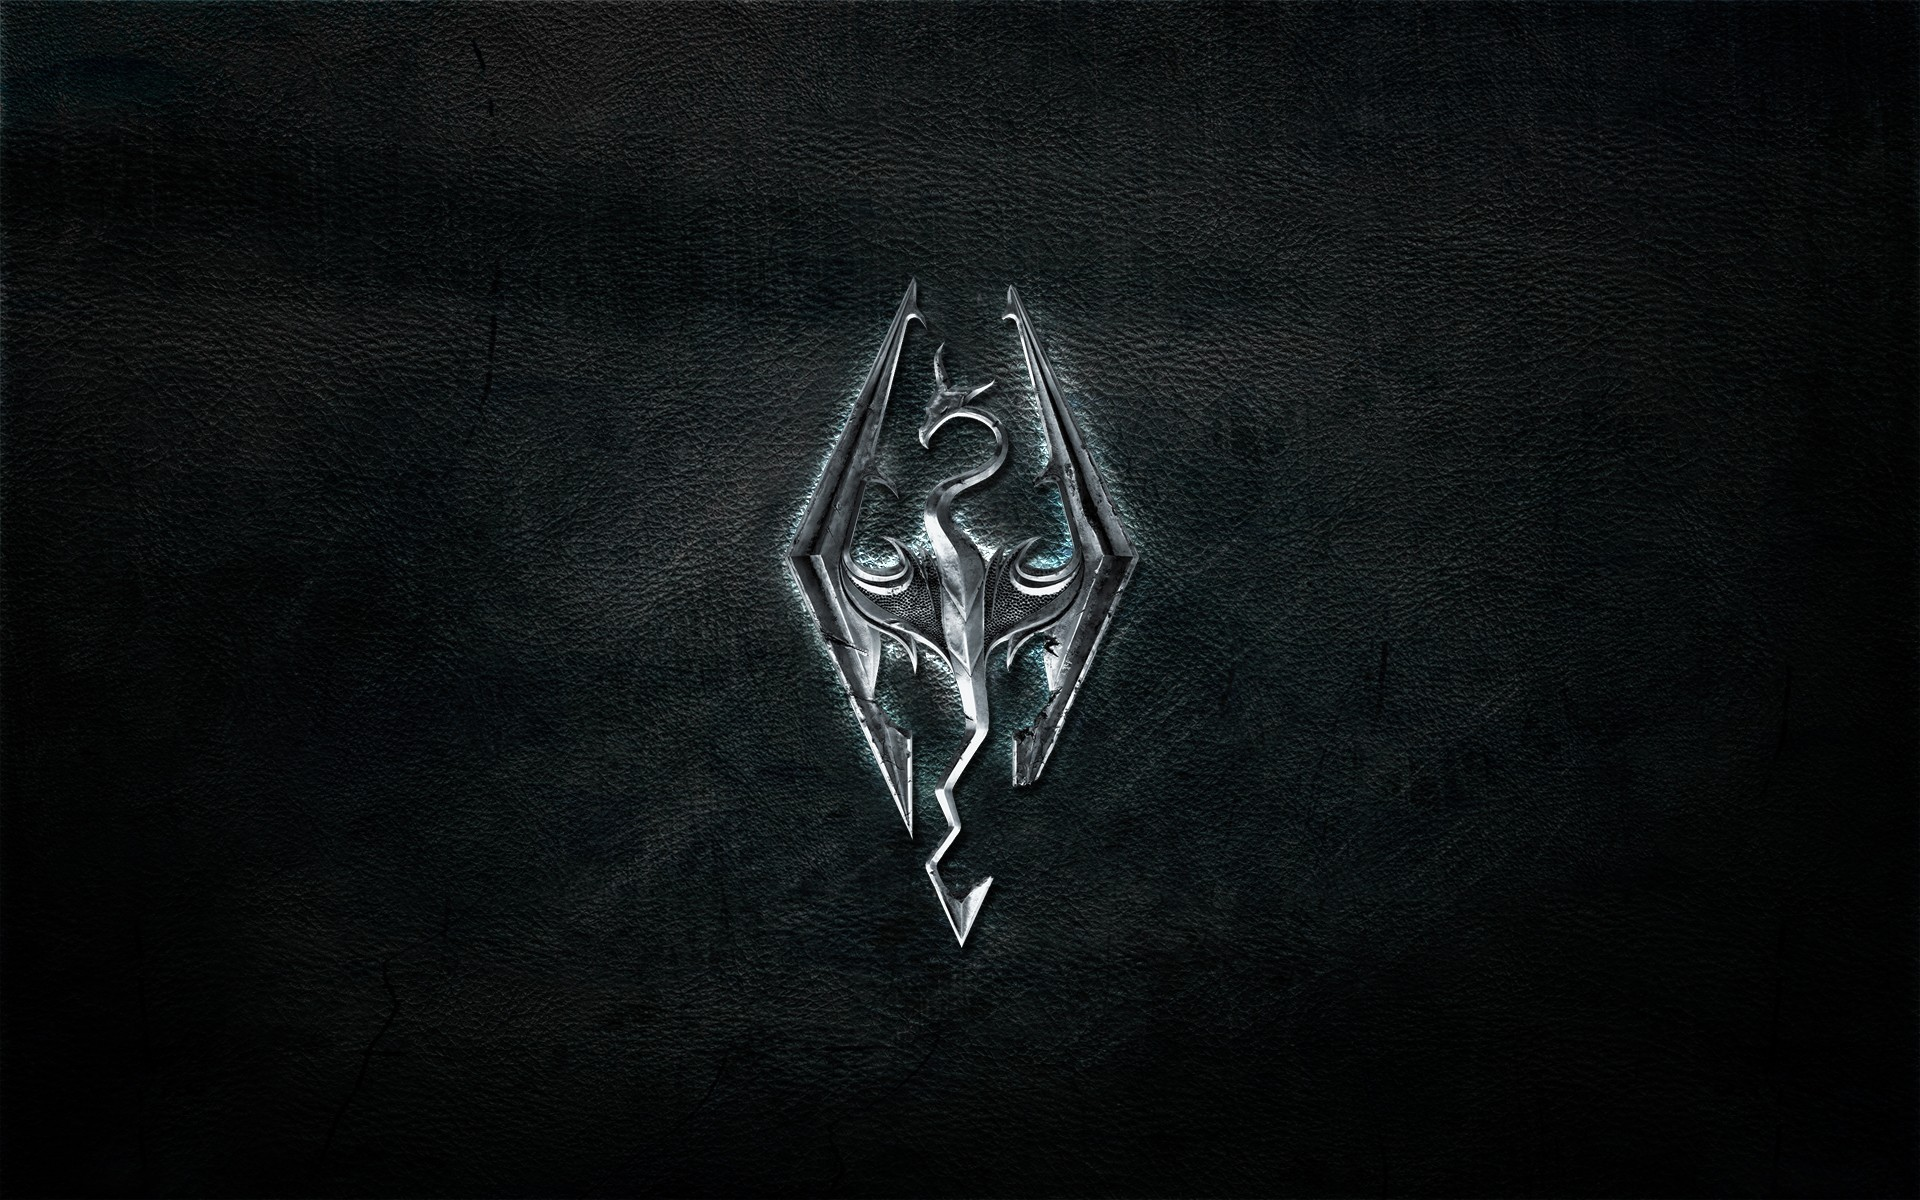 Wallpaper The Elder Scrolls V: Skyrim logo on leather